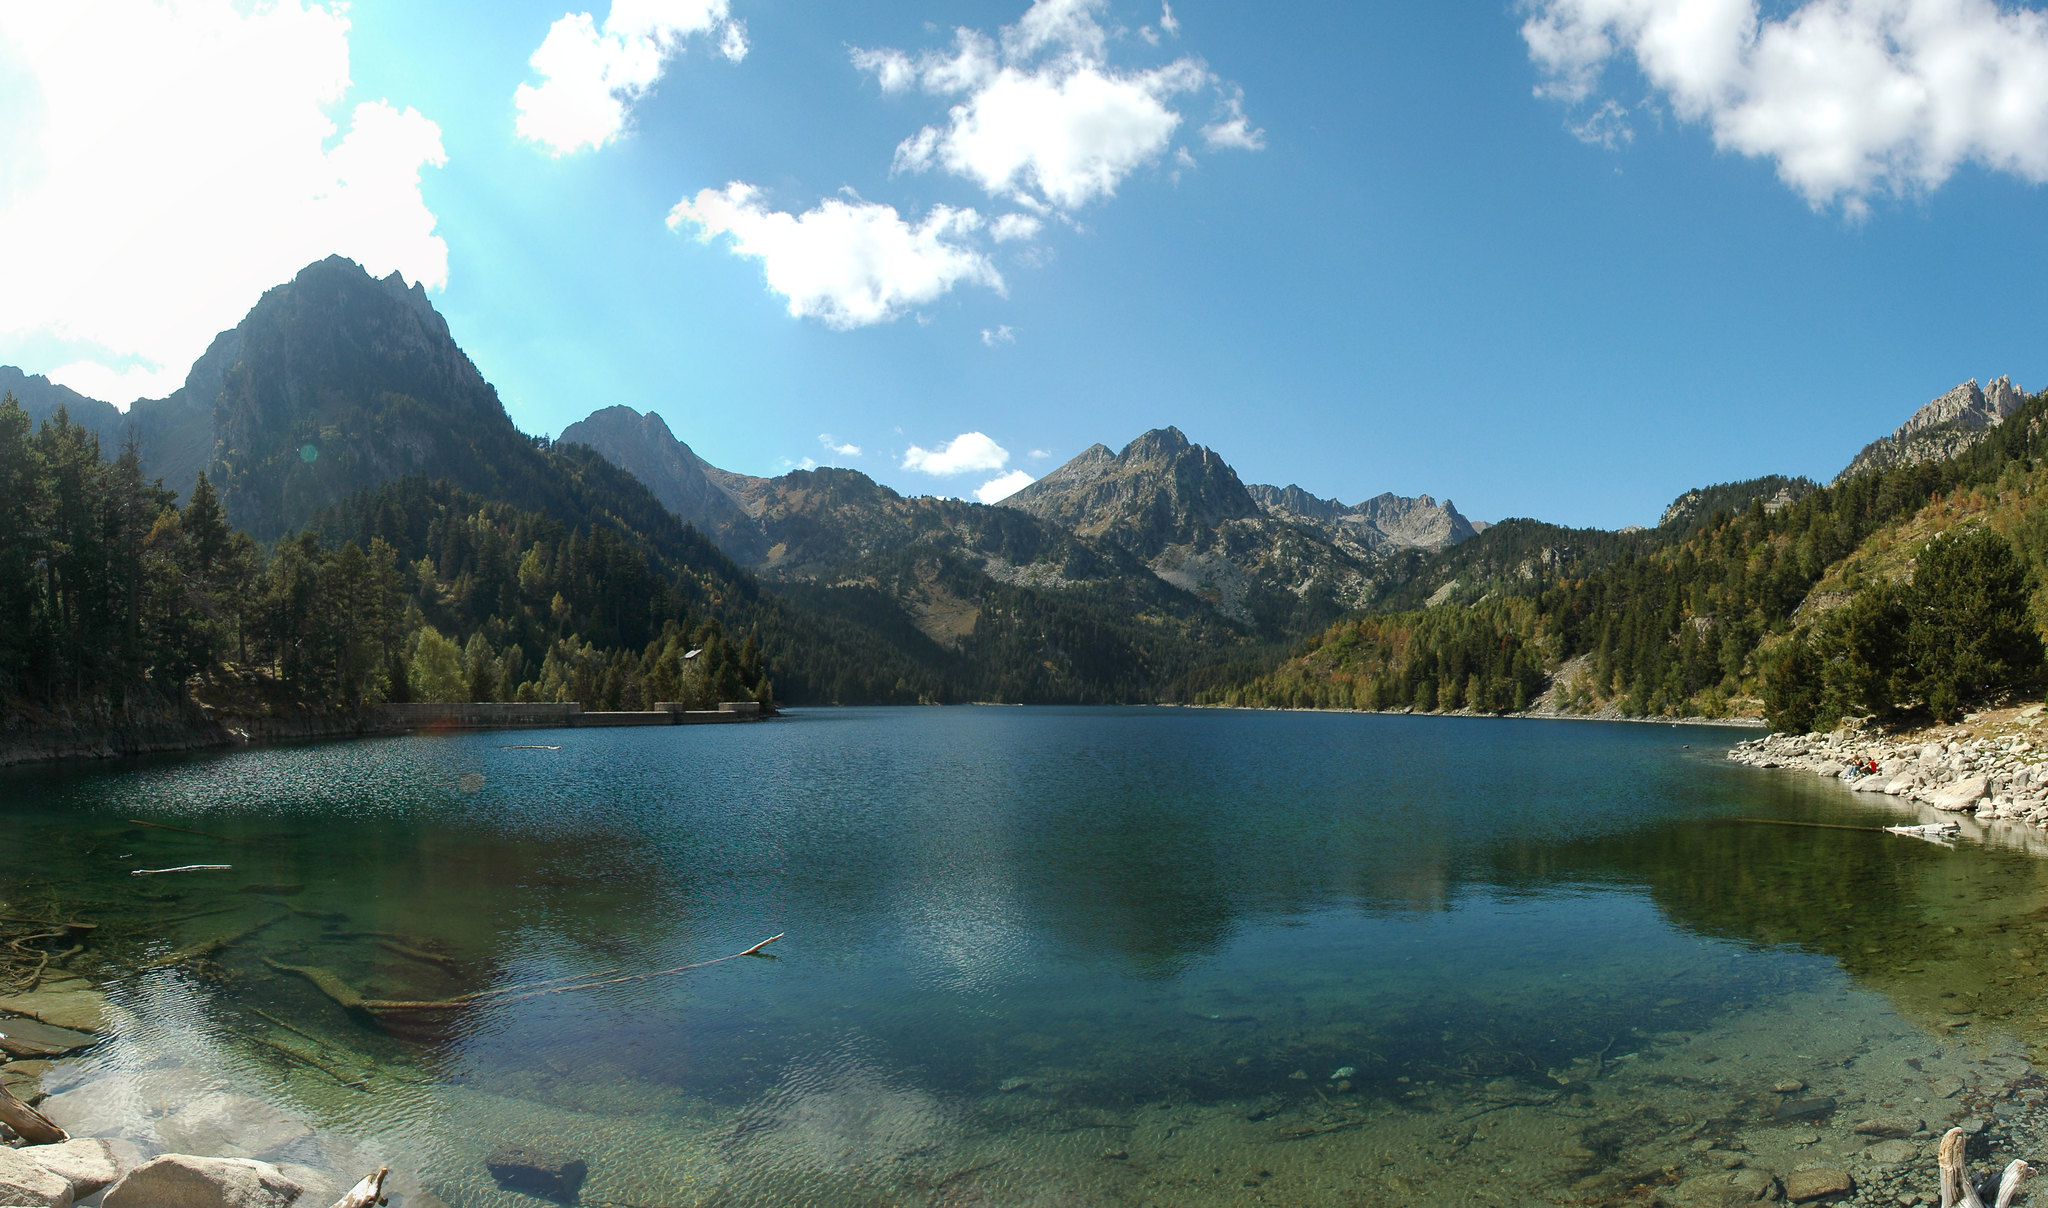 Estany Sant Maurici | Foto: Creativecommons.org